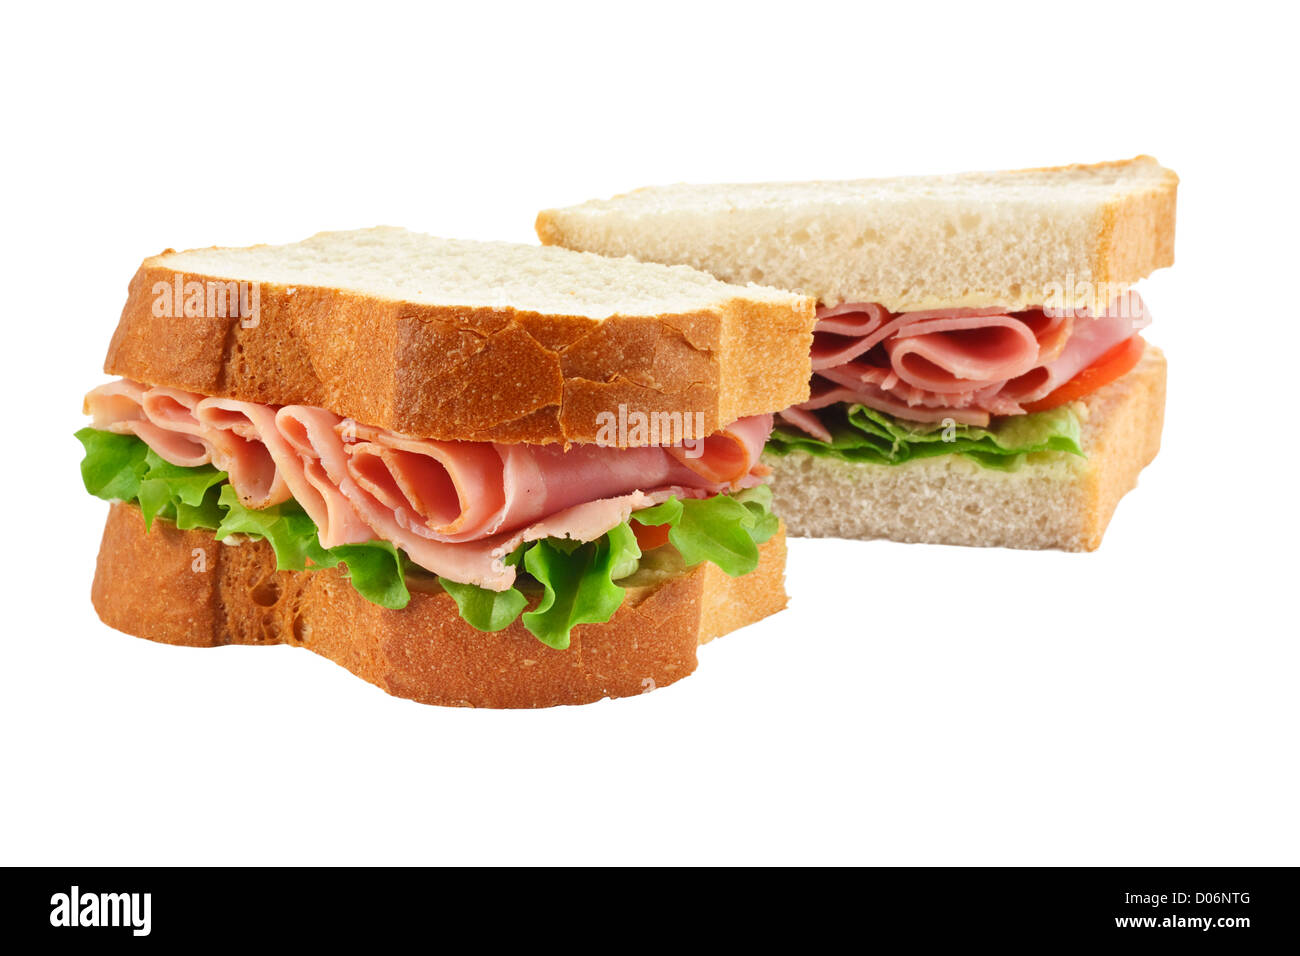 A ham salad sandwich made with freshly sliced bread cut in half with focus on the filling - Stock Image